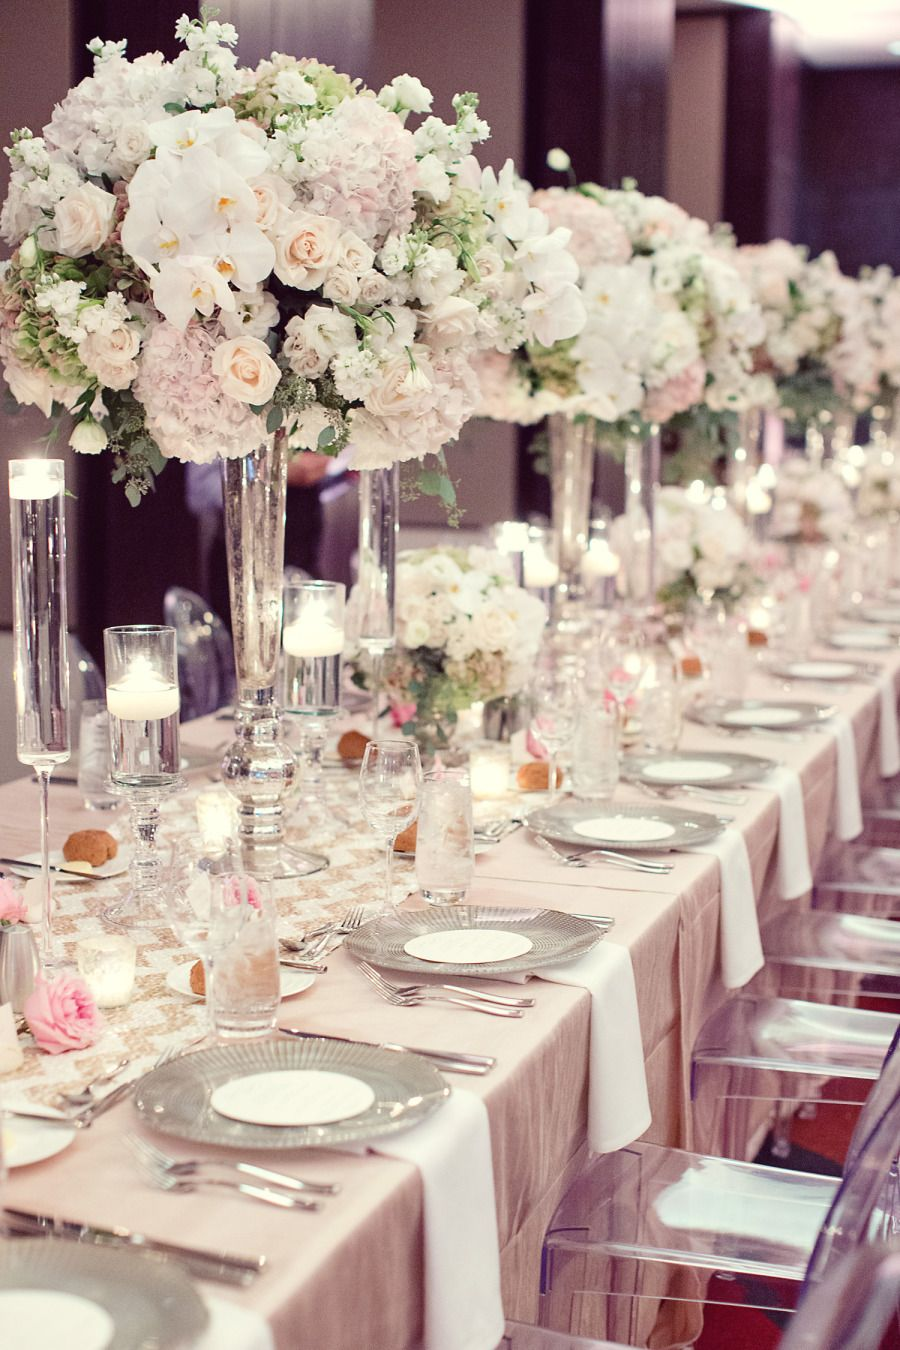 Joule Hotel Wedding | Pinterest | Hotel wedding, Flower ideas and ...